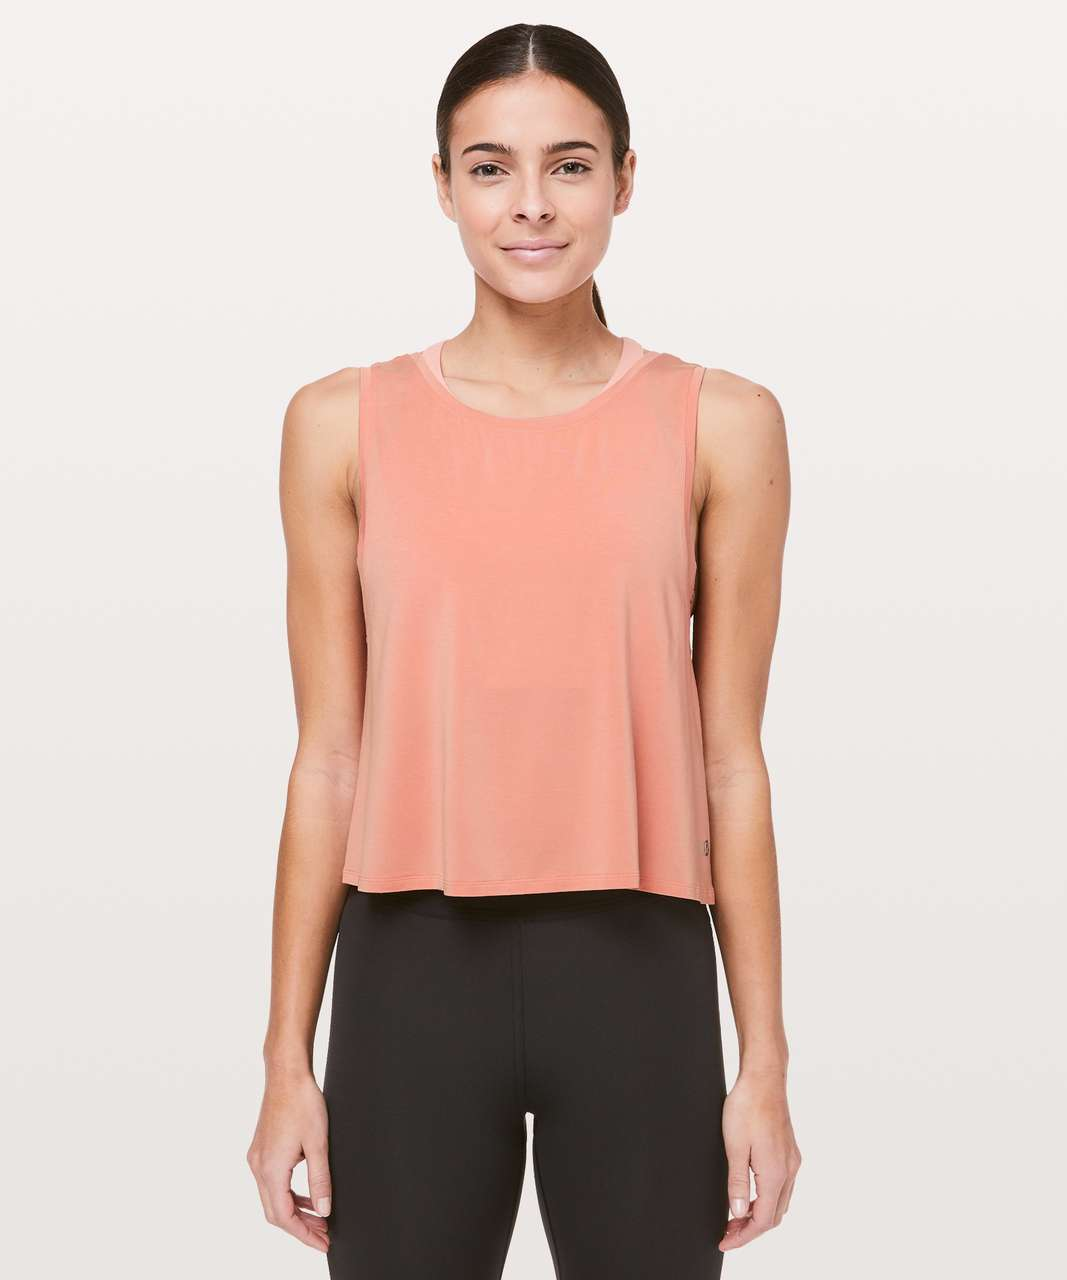 Lululemon Ride & Reflect Tank *lululemon X SoulCycle - Cameo